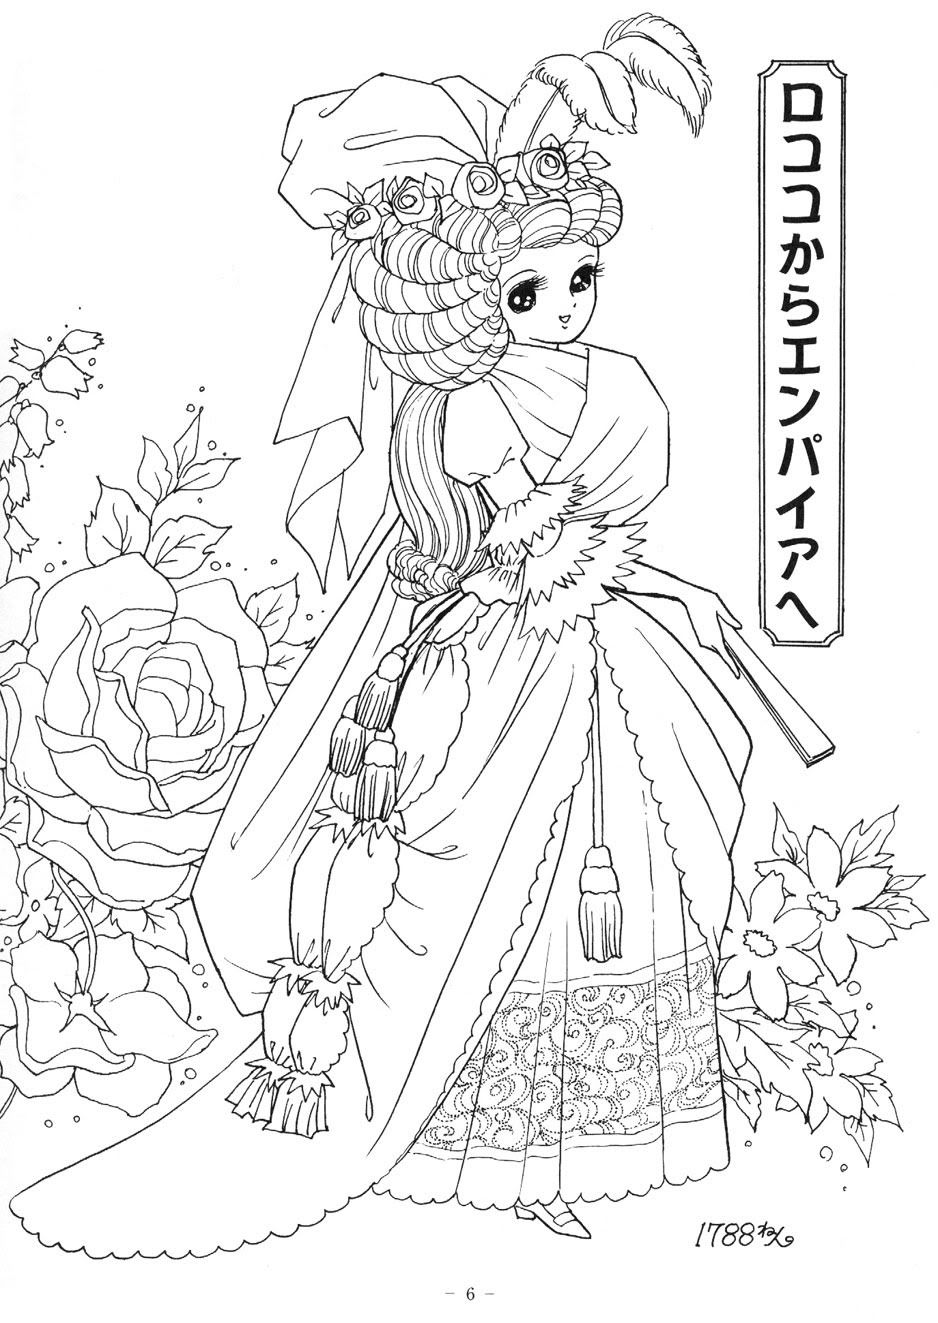 Ladies in historical costume: 1788, Princess World, shoujo princess ...